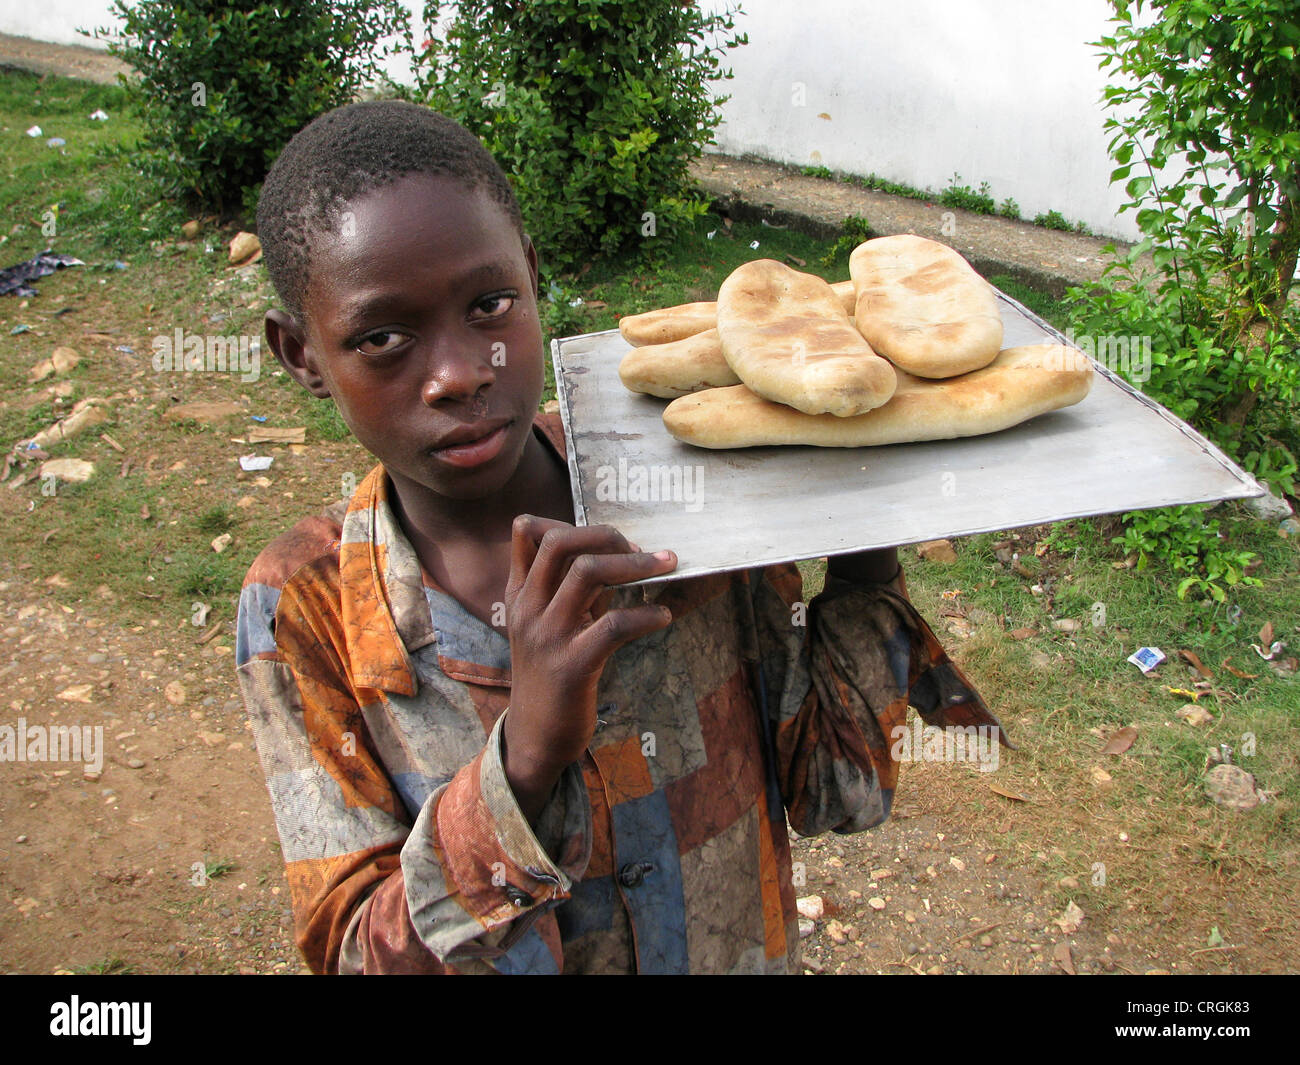 Young boy in a dirty shirt presents frish bread on a tablet, Haiti, Grande Anse, Dame Marie - Stock Image